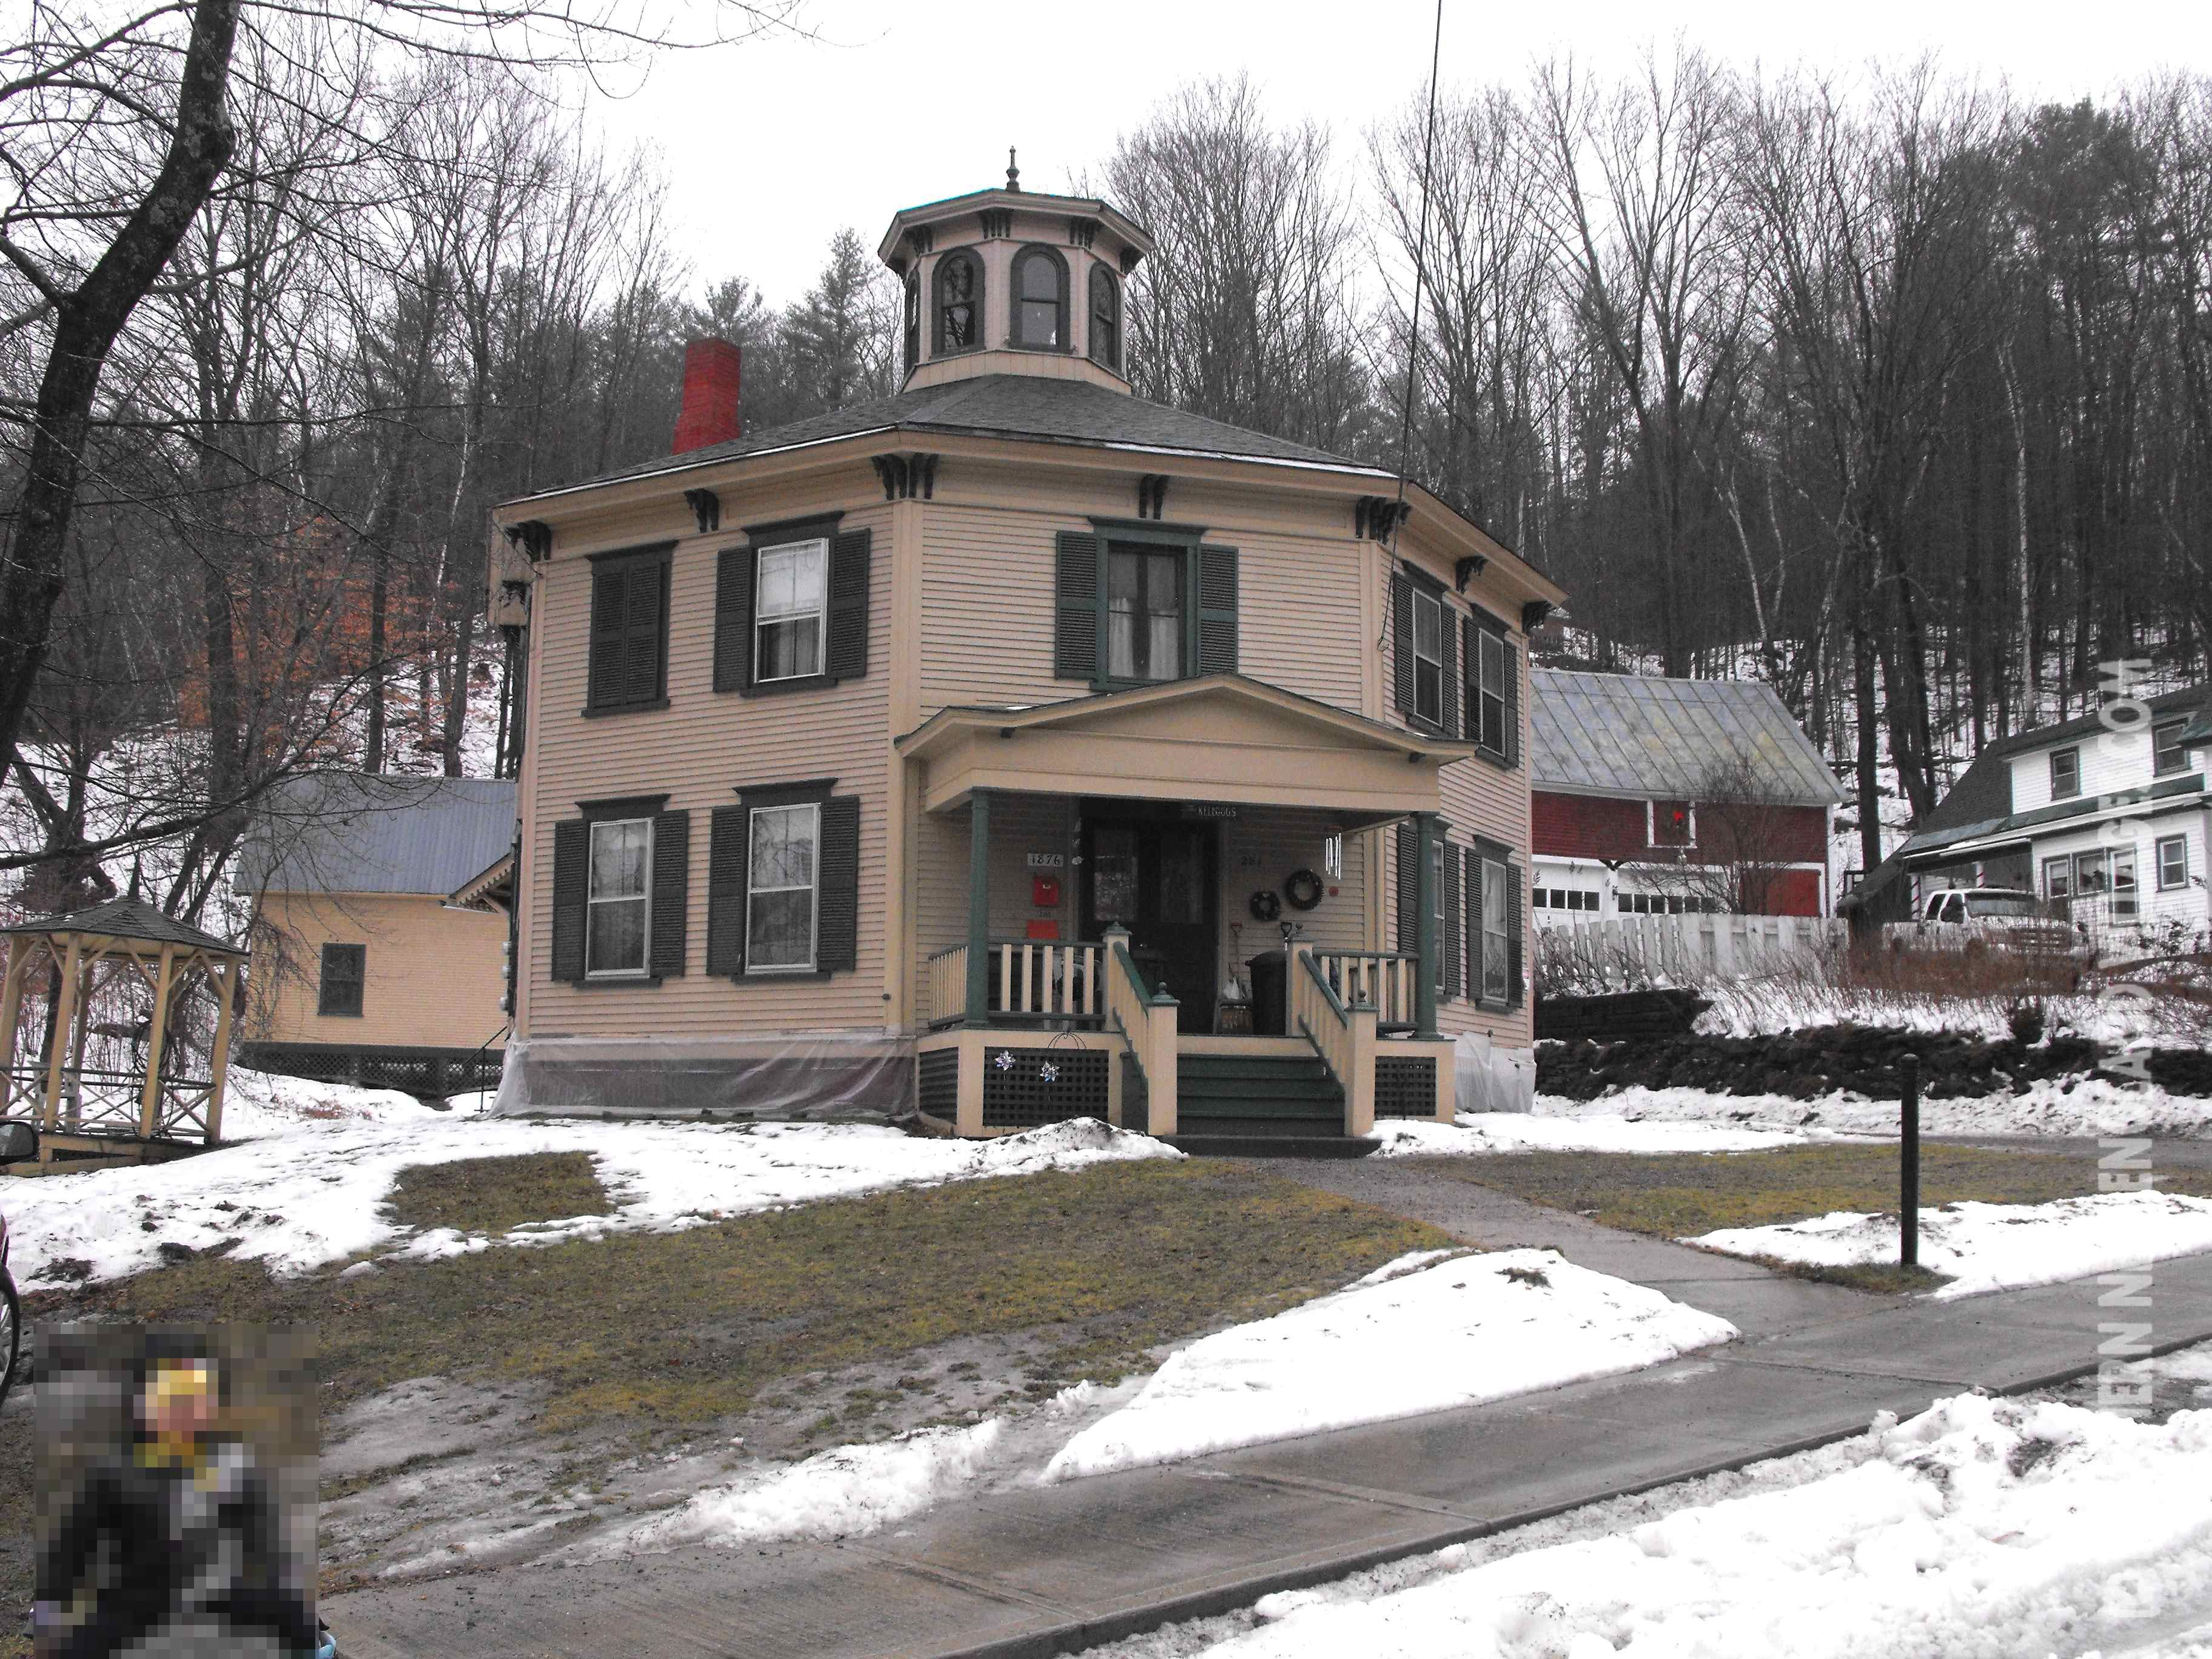 Picture Of The Kellogg Octagon House In St Johnsbury Vermont